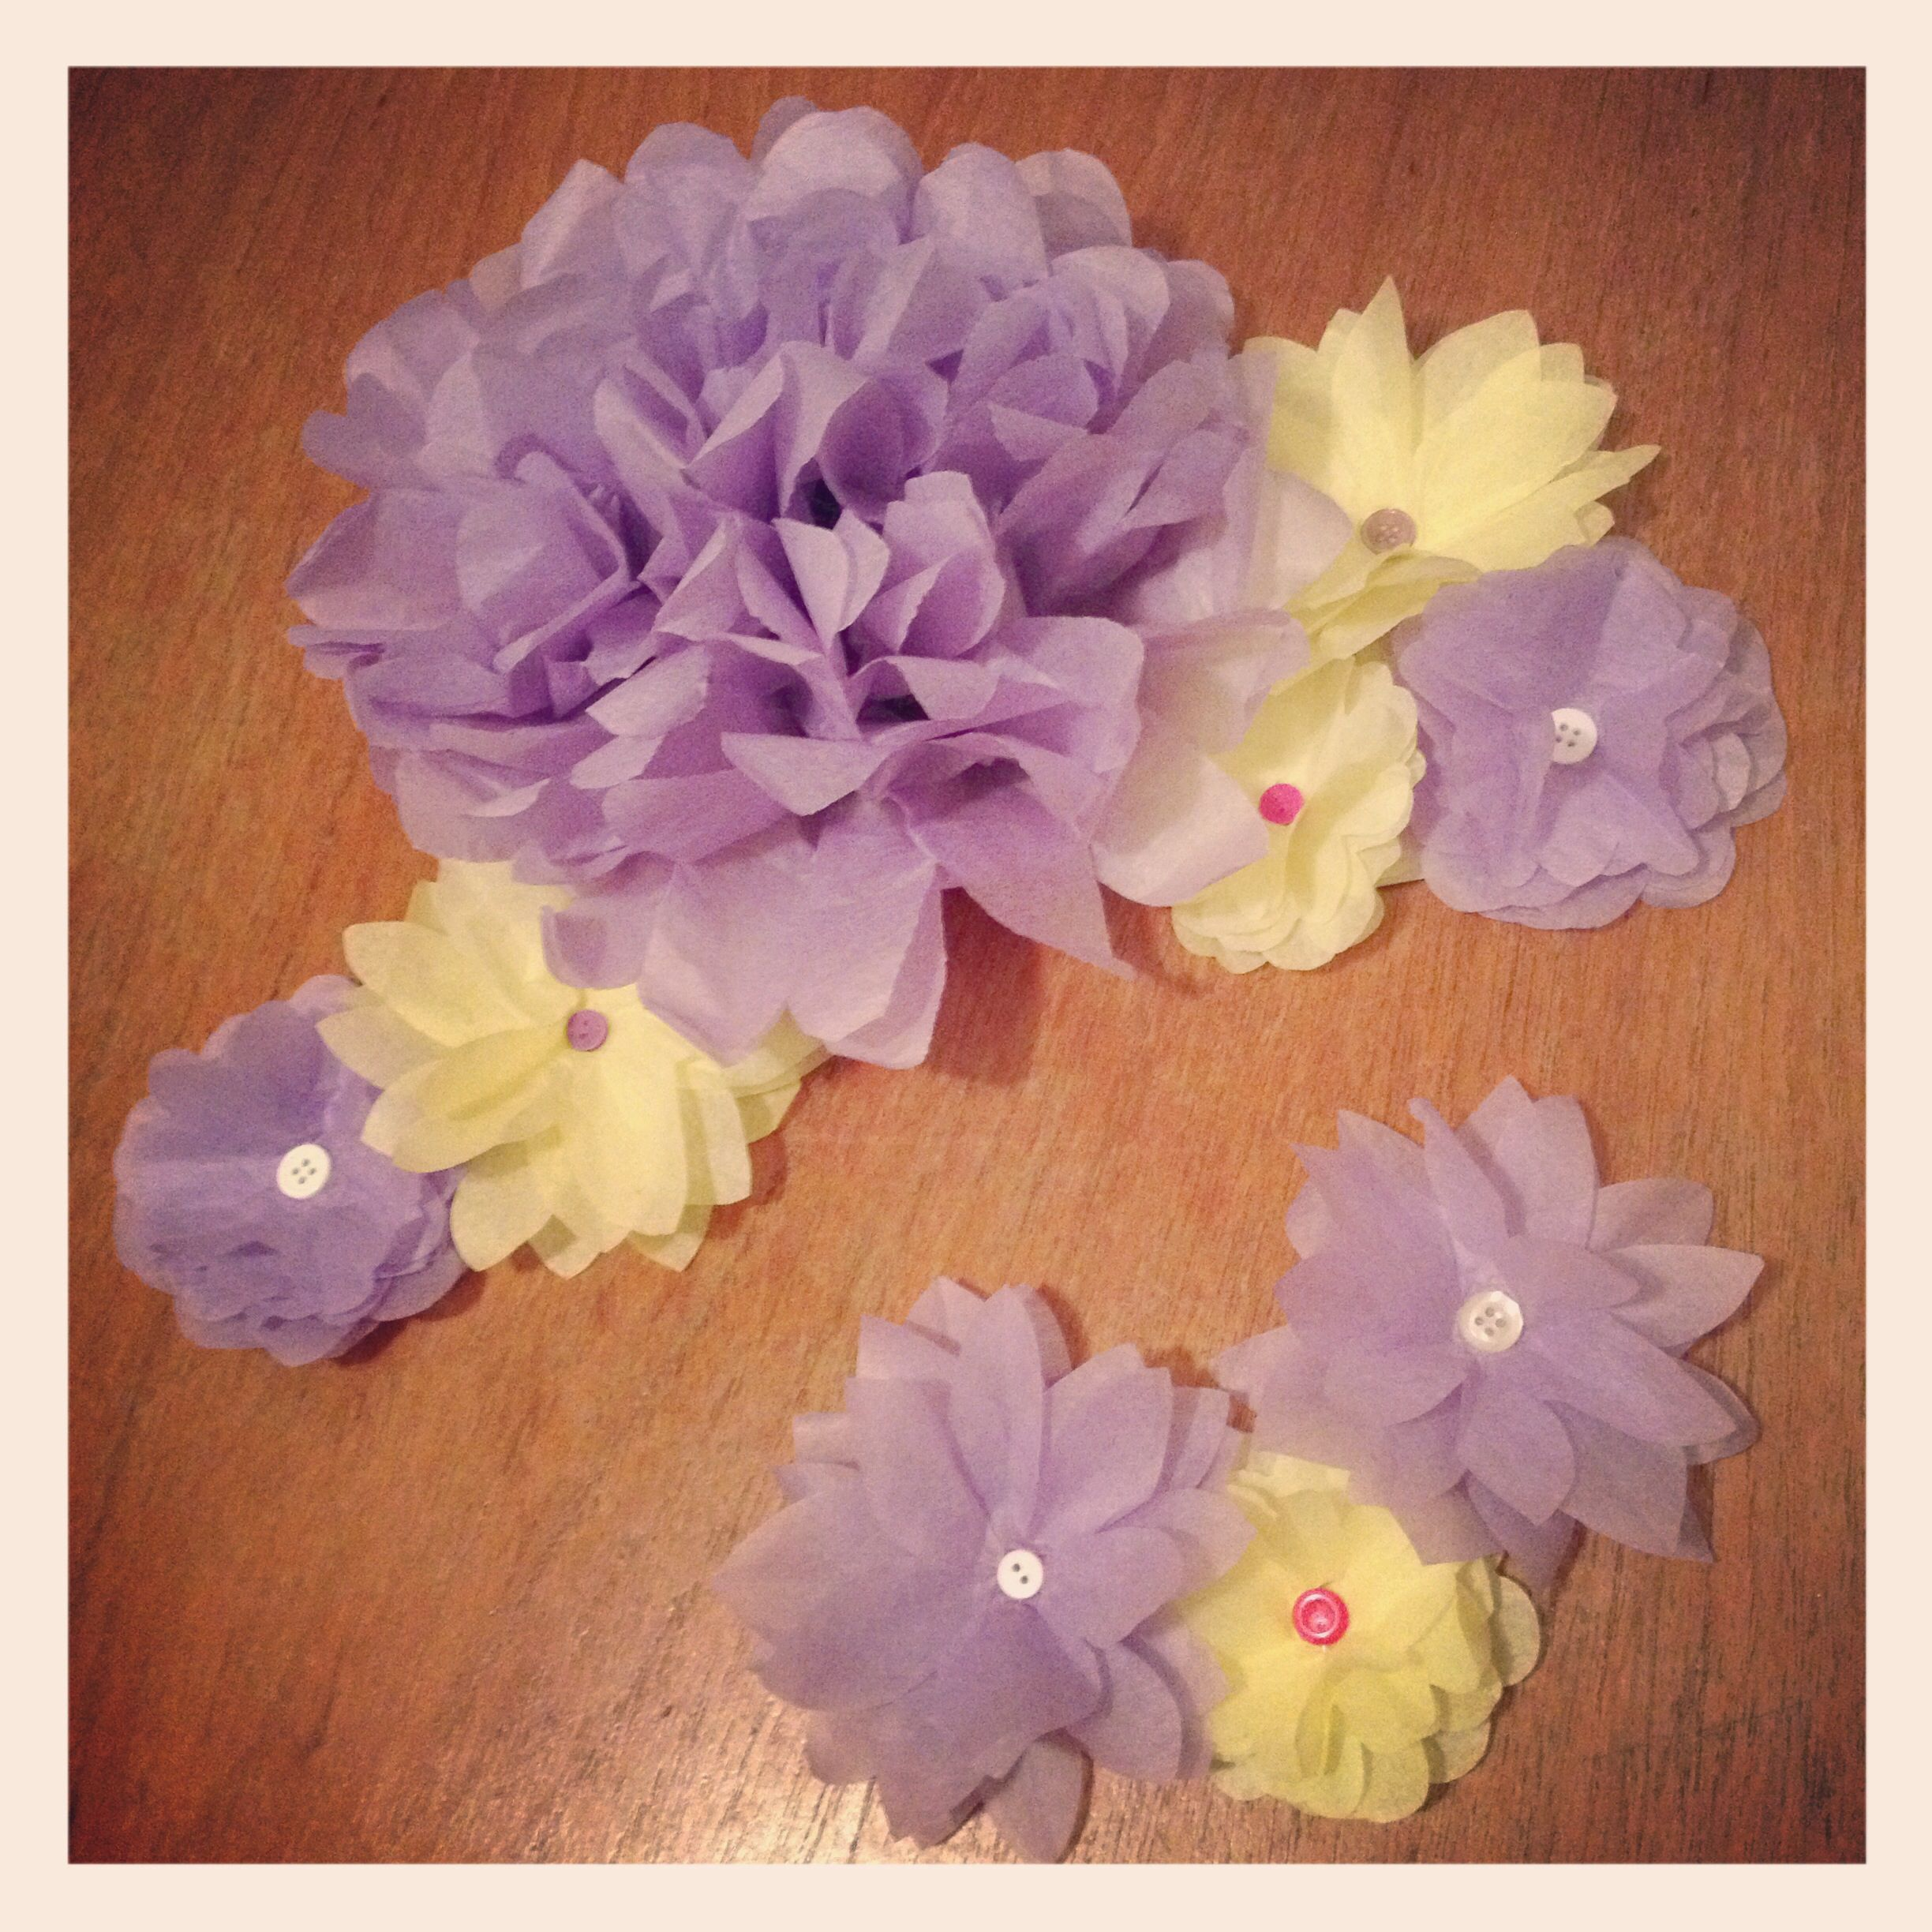 Diy Paper Flowers Easy But Time Consuming Pinterest Win